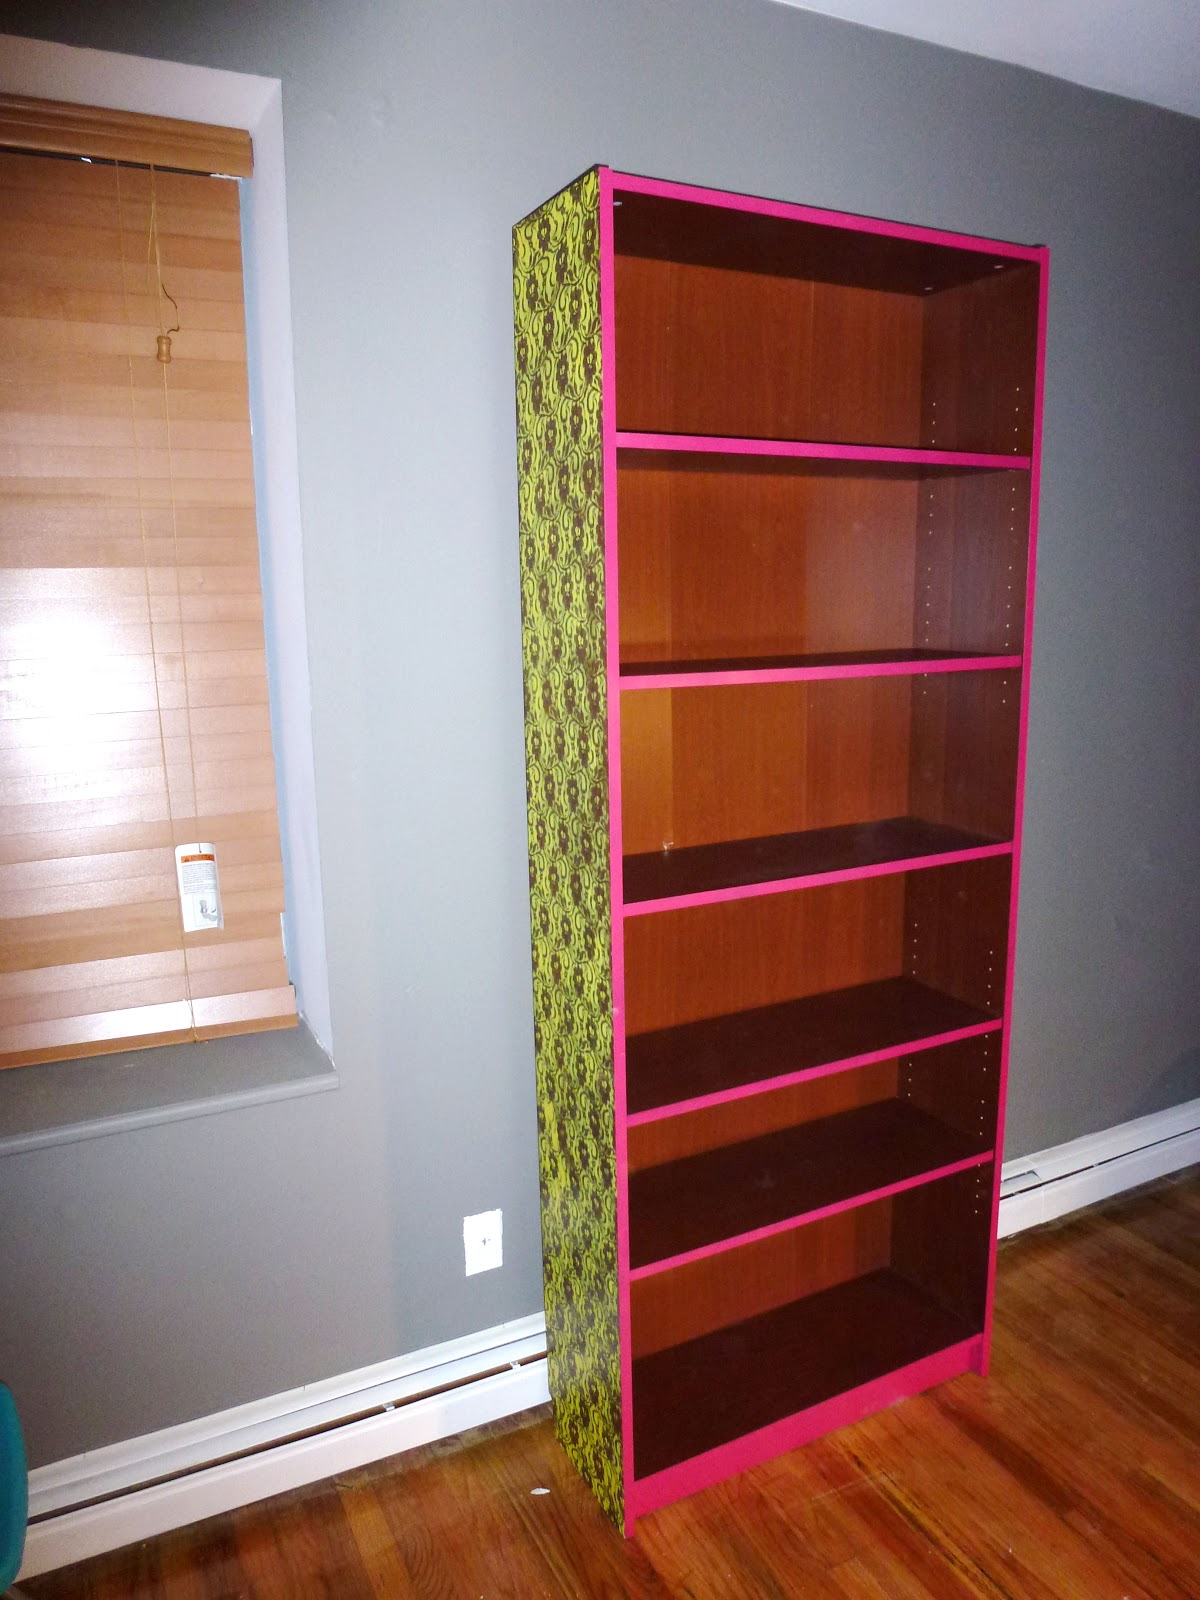 Ikea Billy Yellow Hey Look What I Made Neon Lace Bookshelf